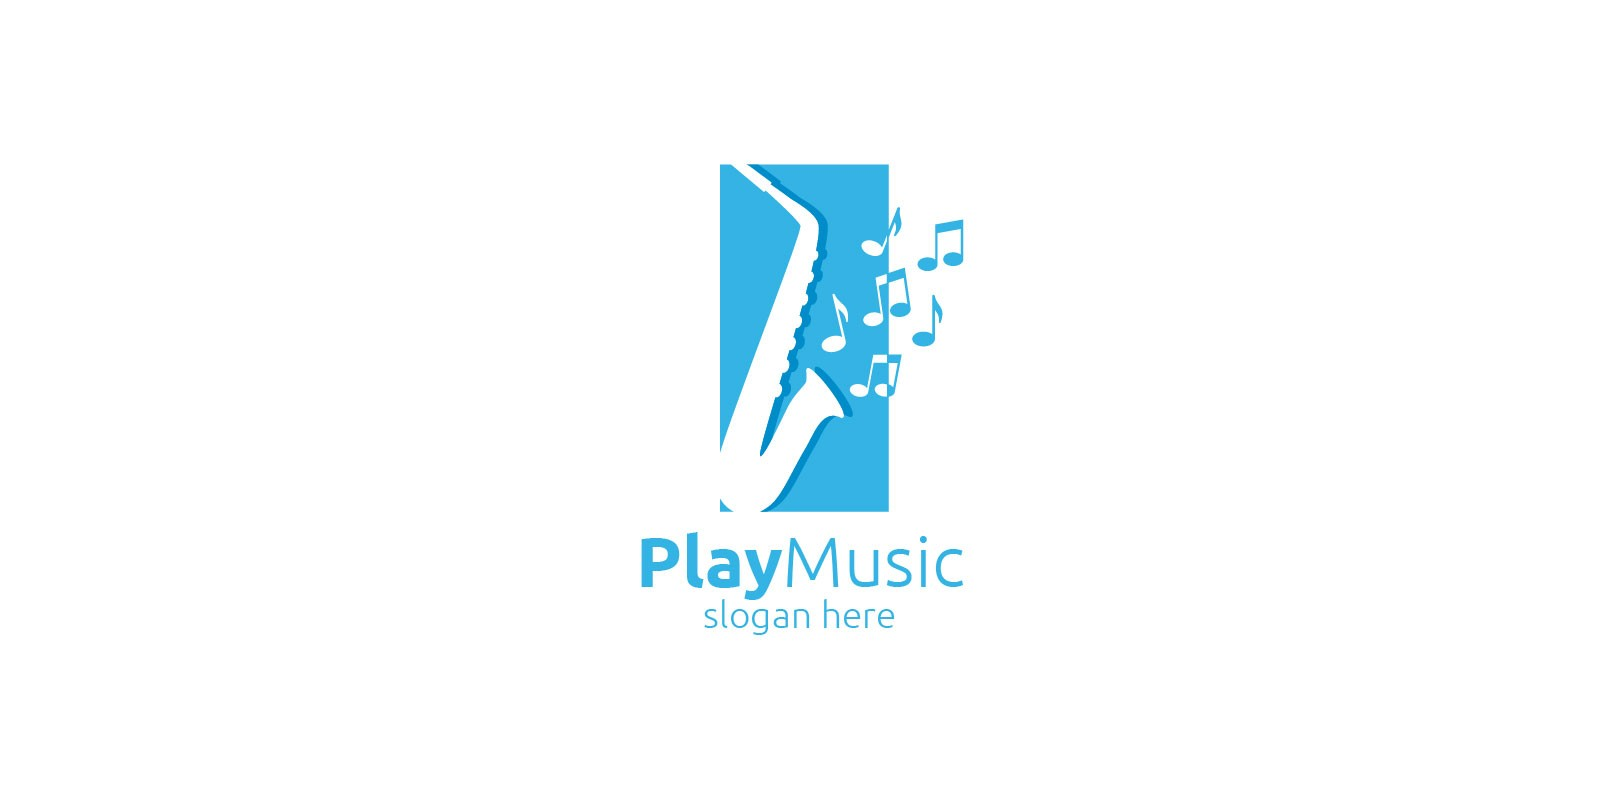 Saxophone Music Logo Design with Square Concept